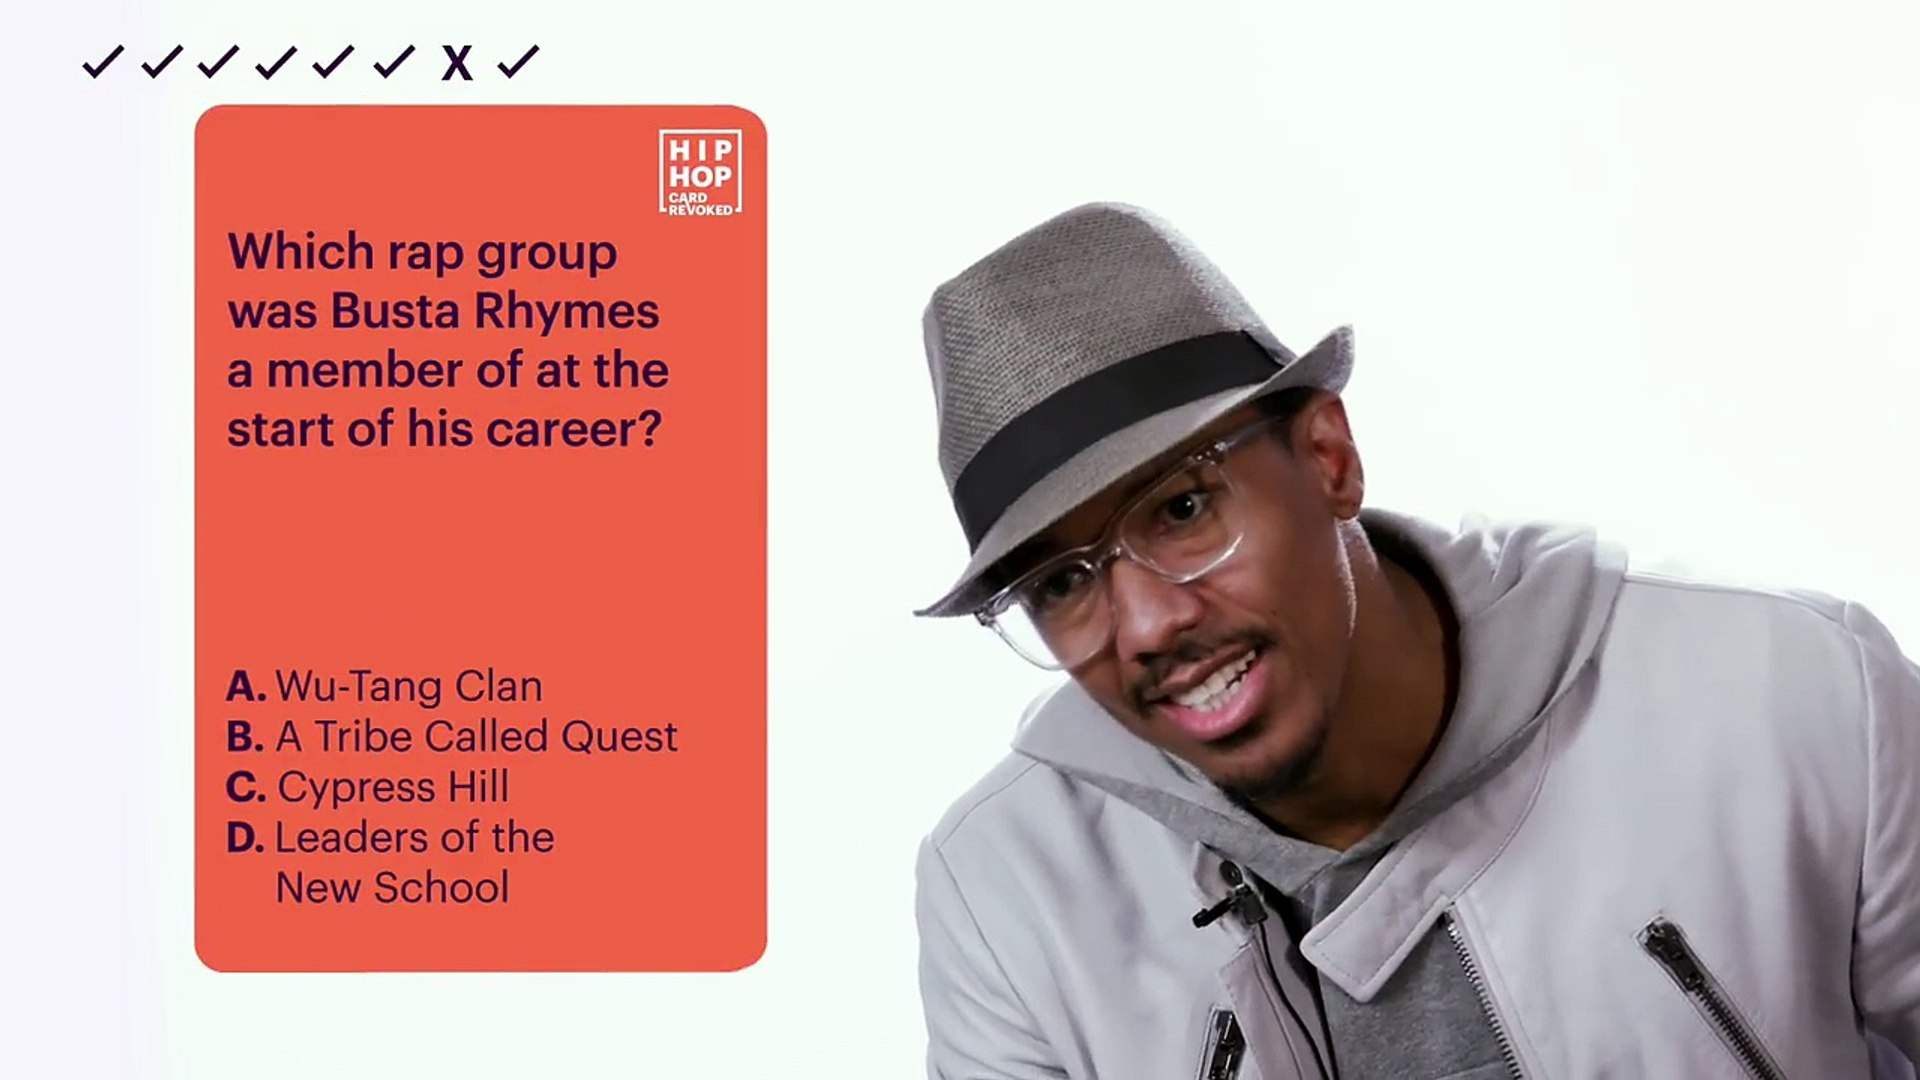 Hip Hop Card Revoked - Nick Cannon of 'Wild 'N Out' _ Hip Hop Squares-GXDX19XhqSg